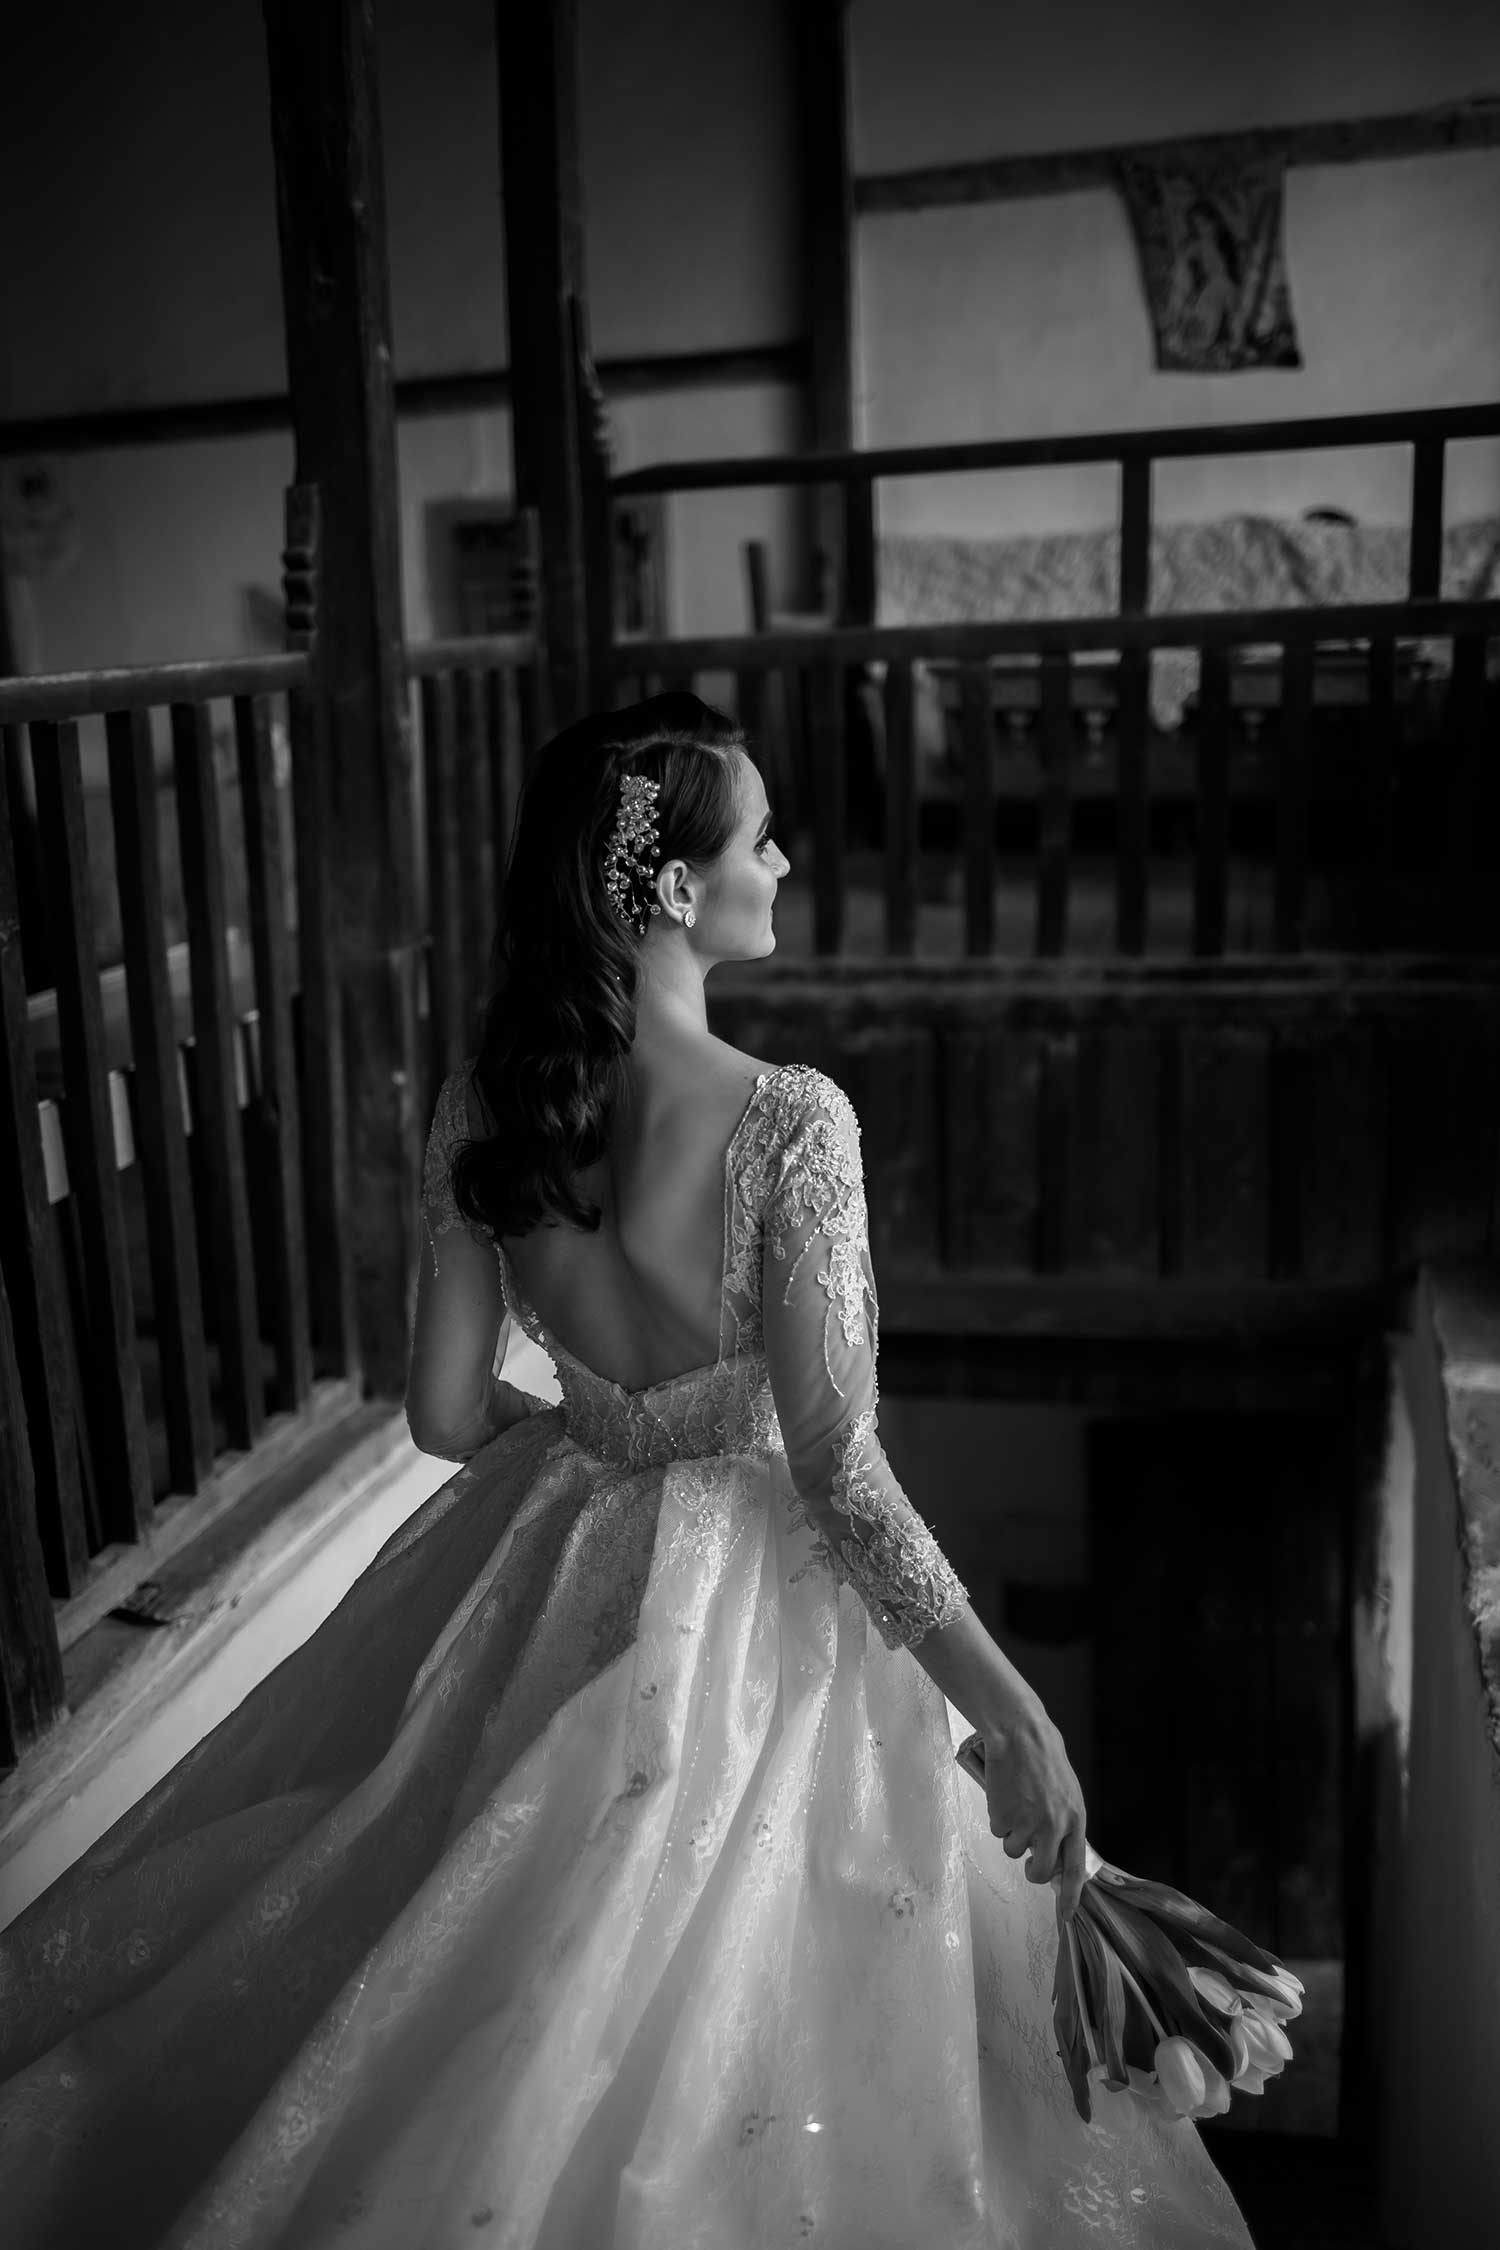 Beautiful black and white wedding photo of the bride